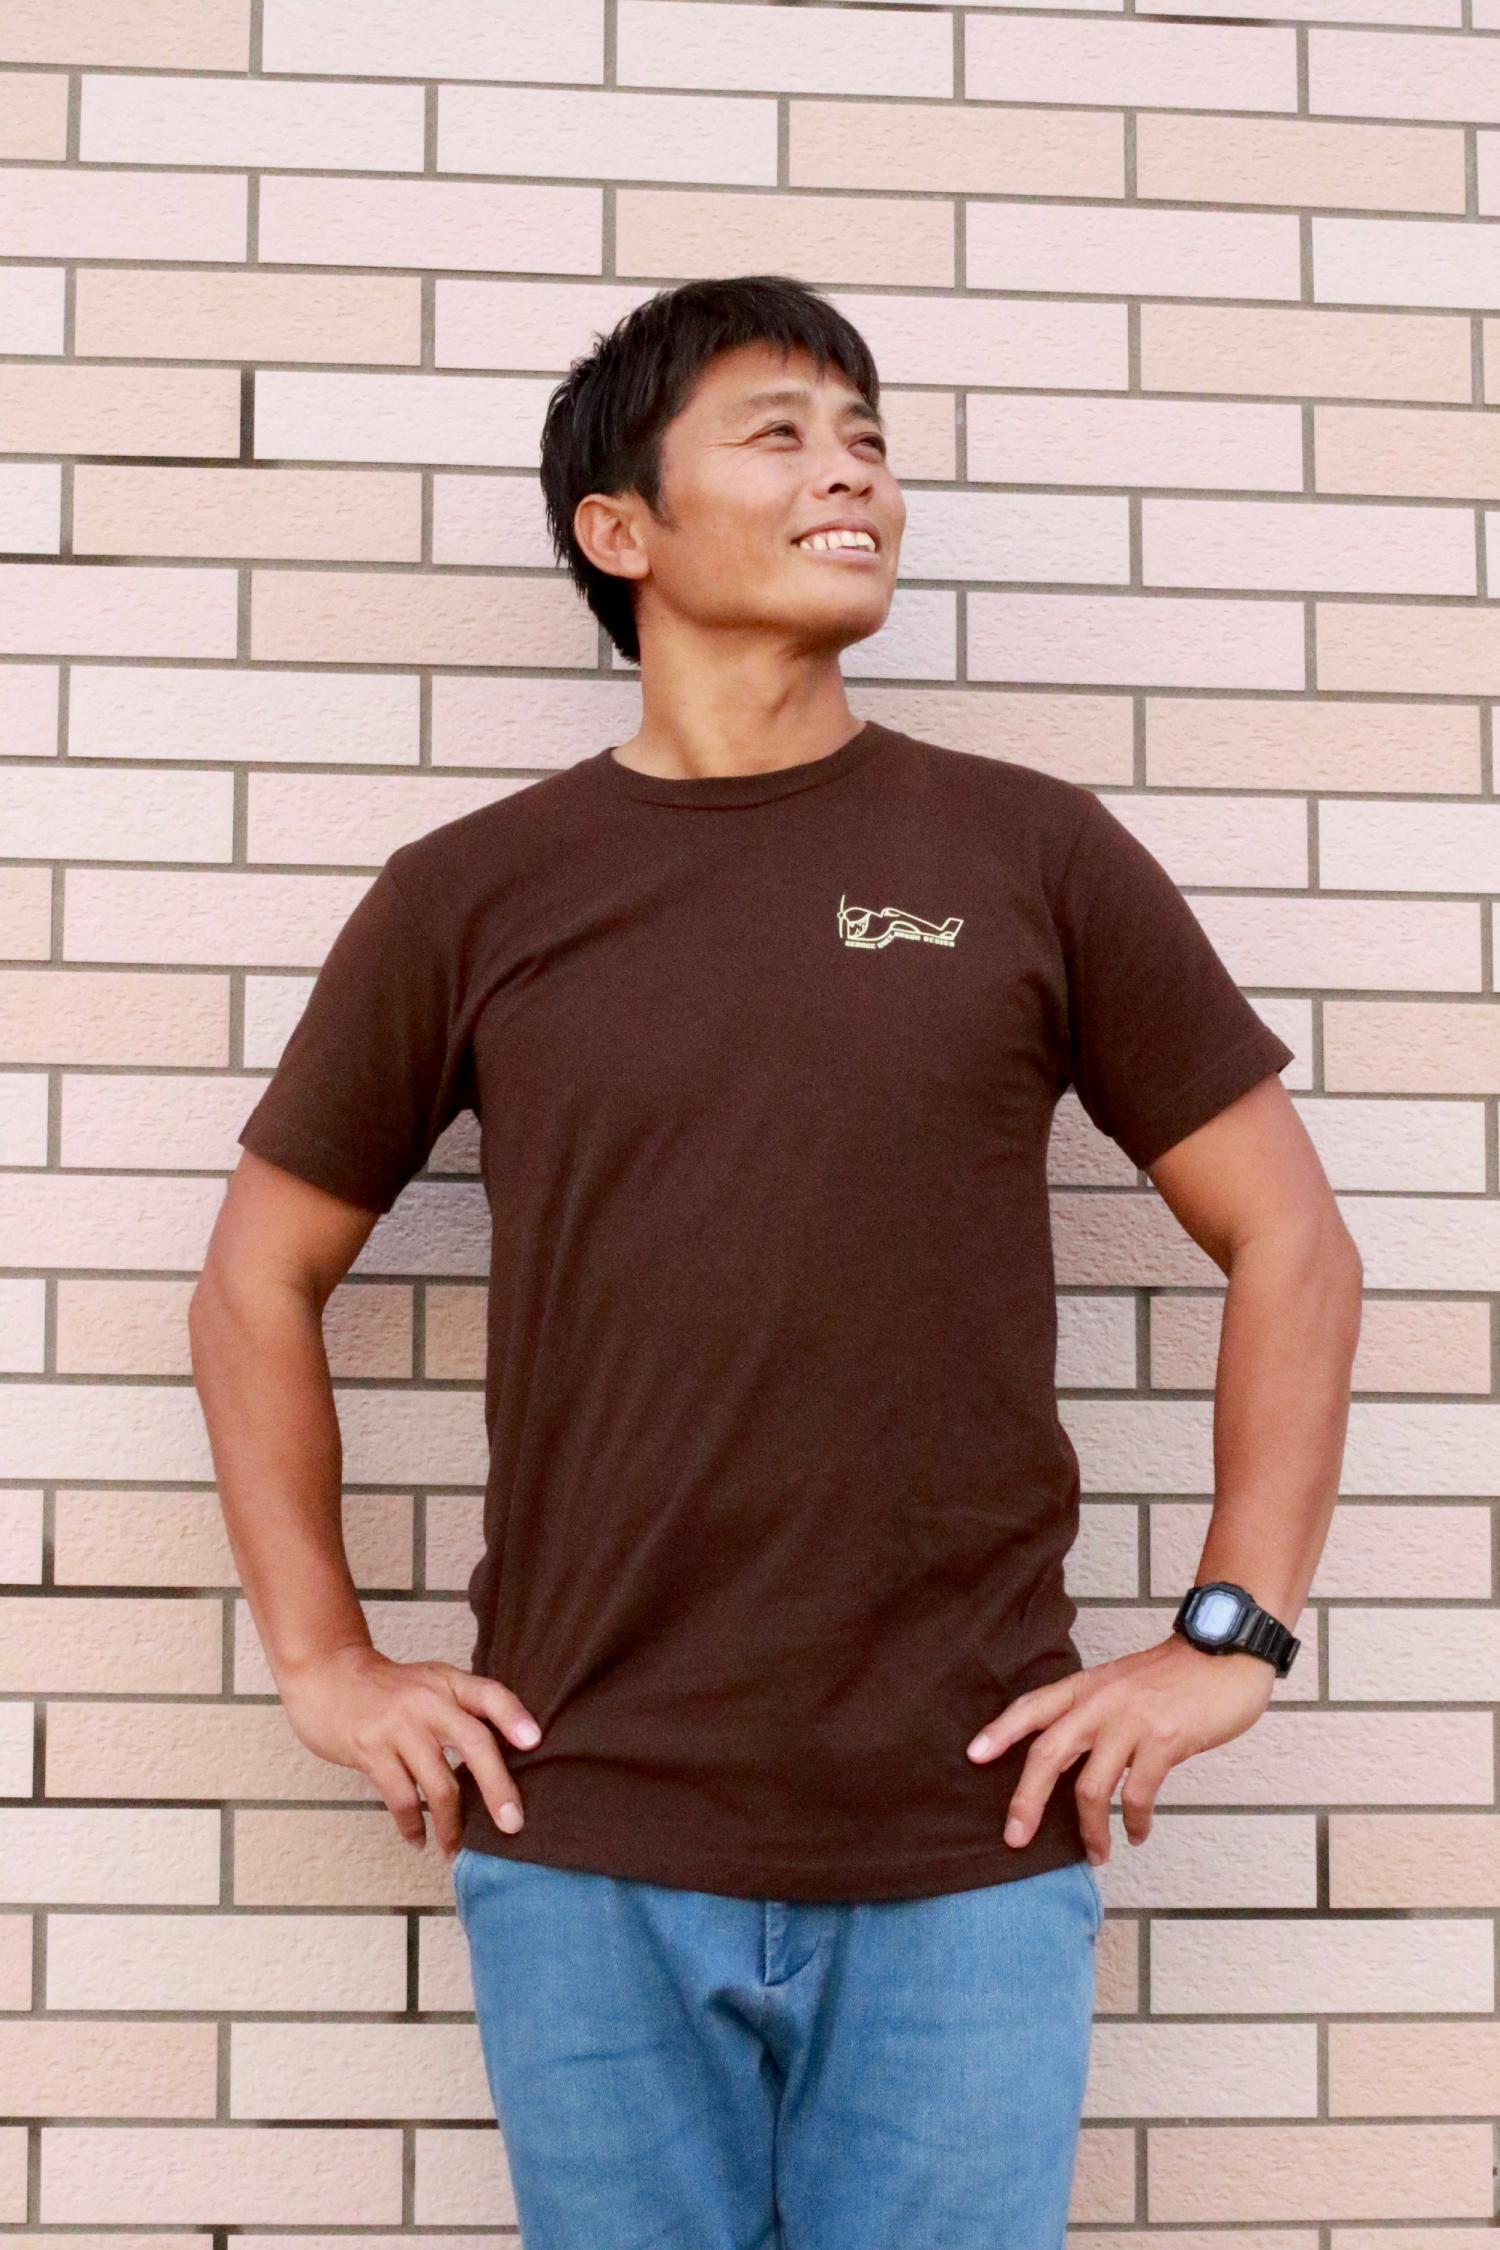 GREENOUGH AIRPLANE BACK LOGO T-SHIRT BROWN